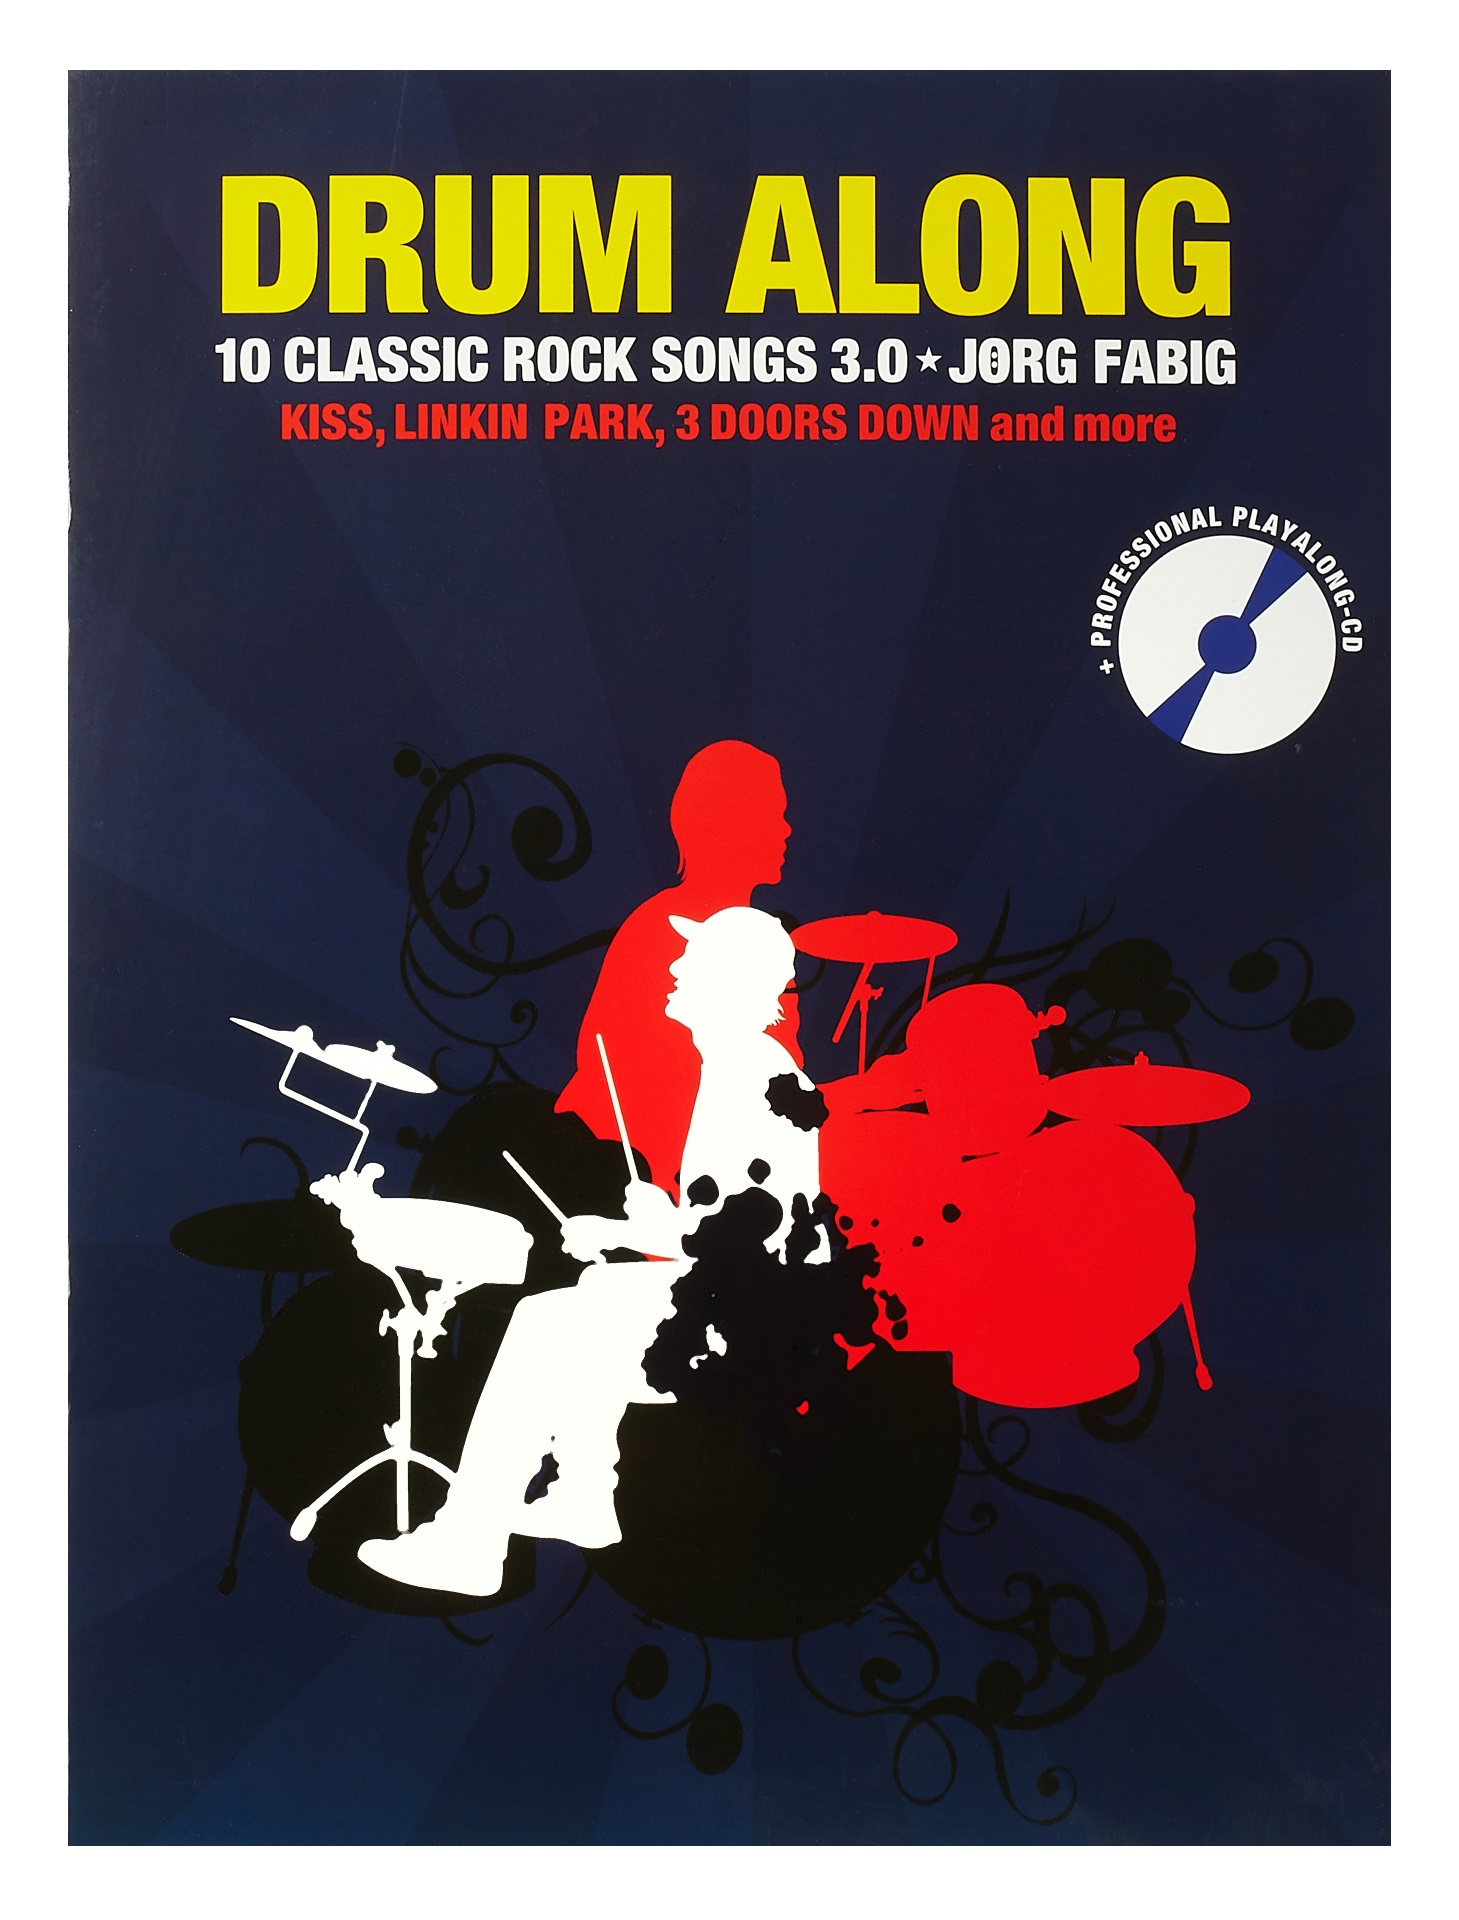 MS Drum Along IX - 10 Classic Rock Songs 3.0